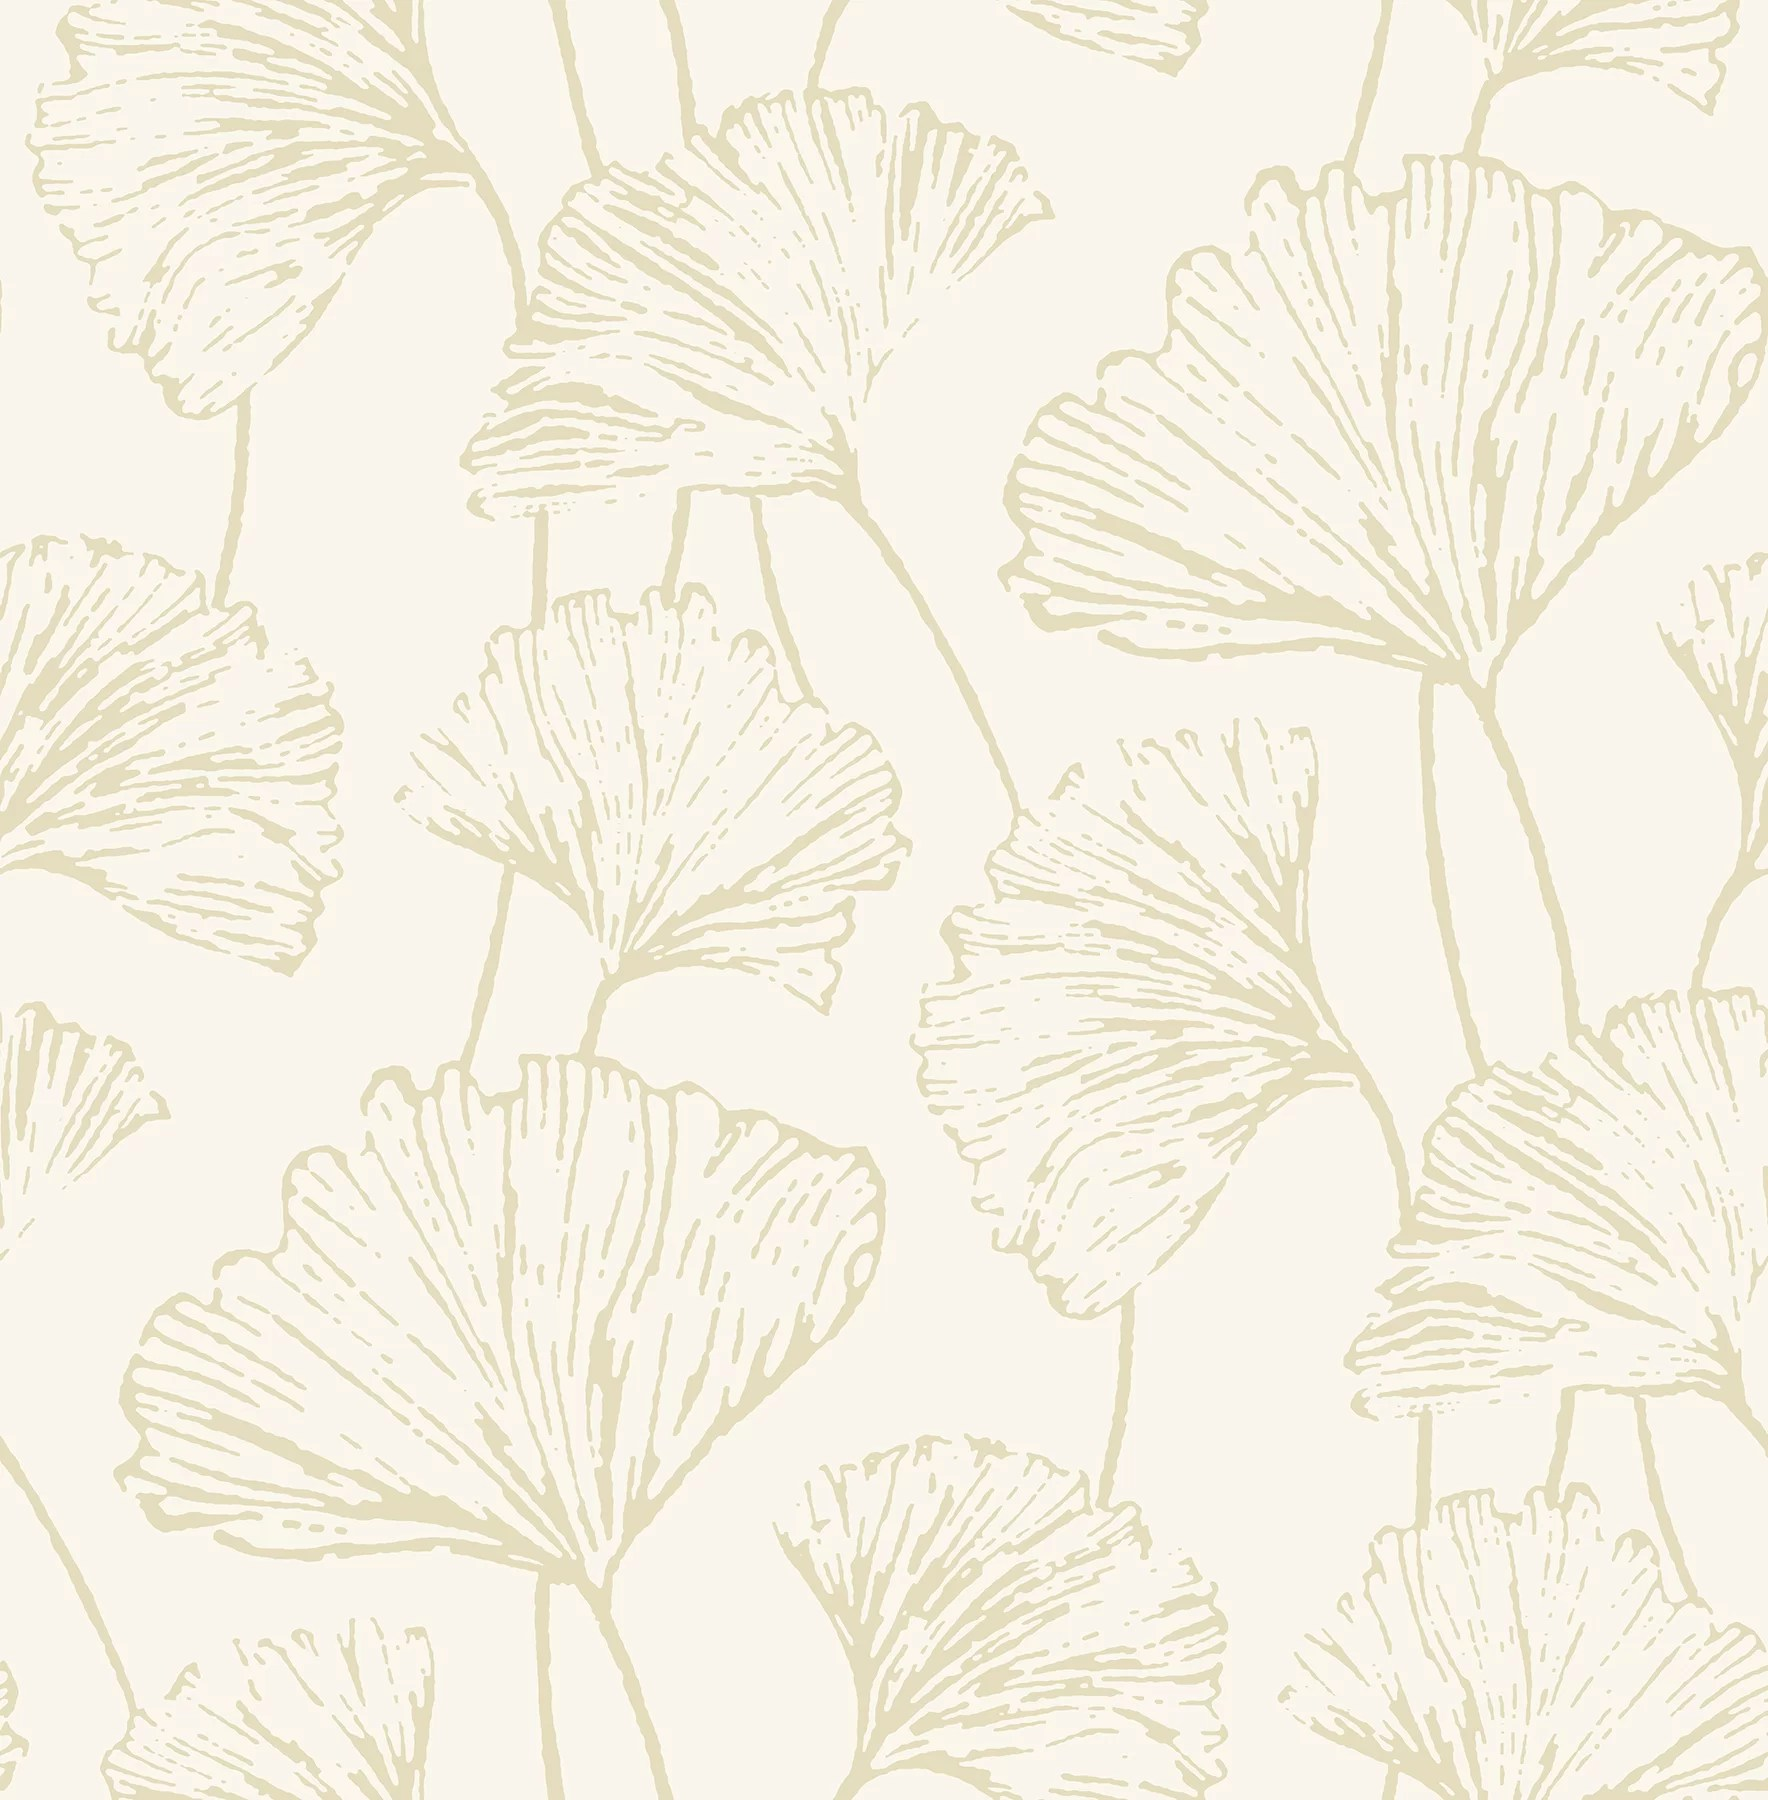 Ophelia Co Kalgoorlie Ginkgo 33 L X 20 5 W Floral And Botanical Wallpaper Roll Reviews Wayfair